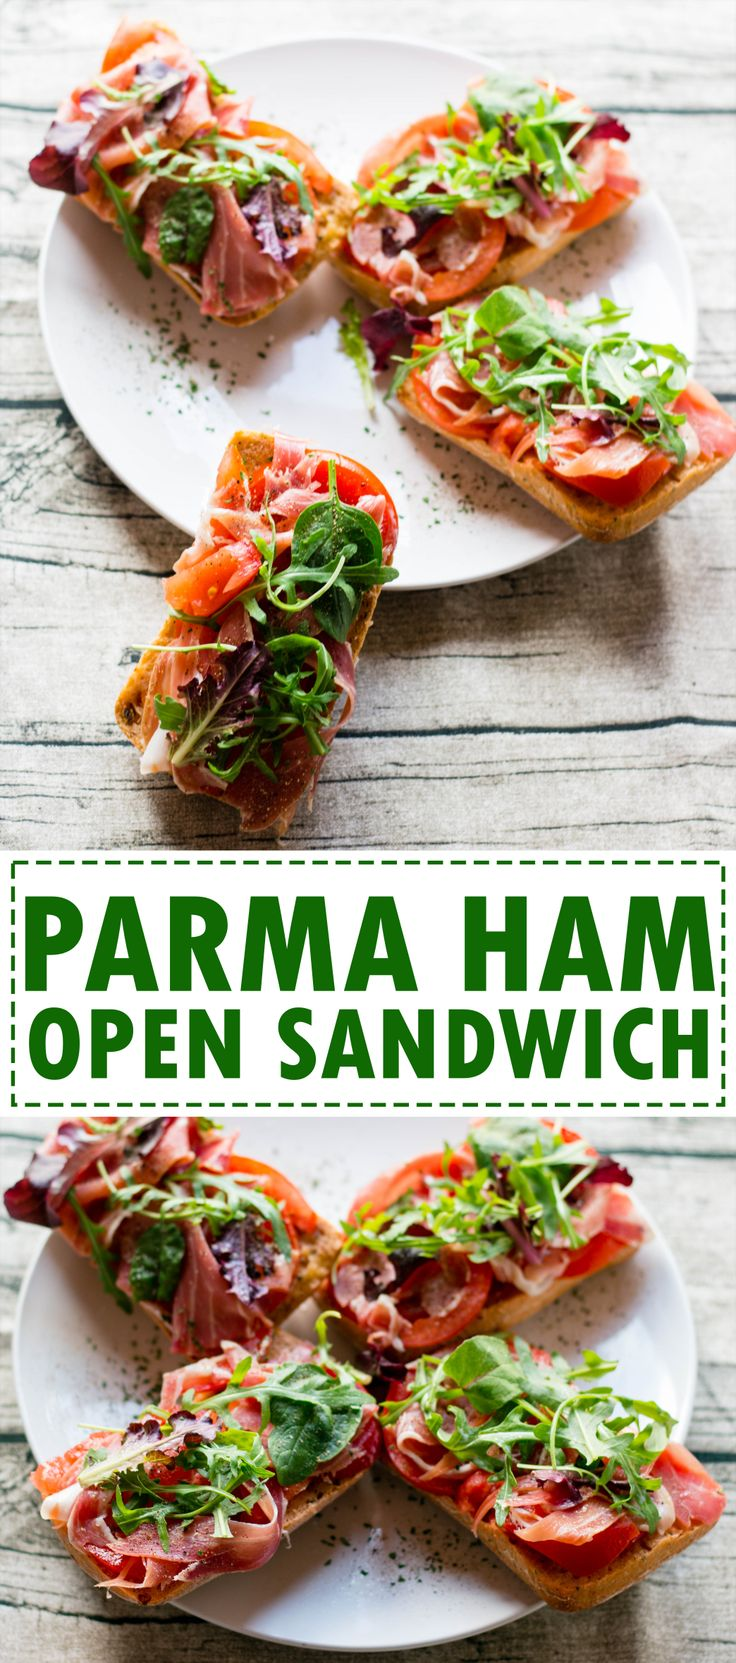 Parma ham open sandwich, healthy and light meal. Can be prepared in under 10 minutes.